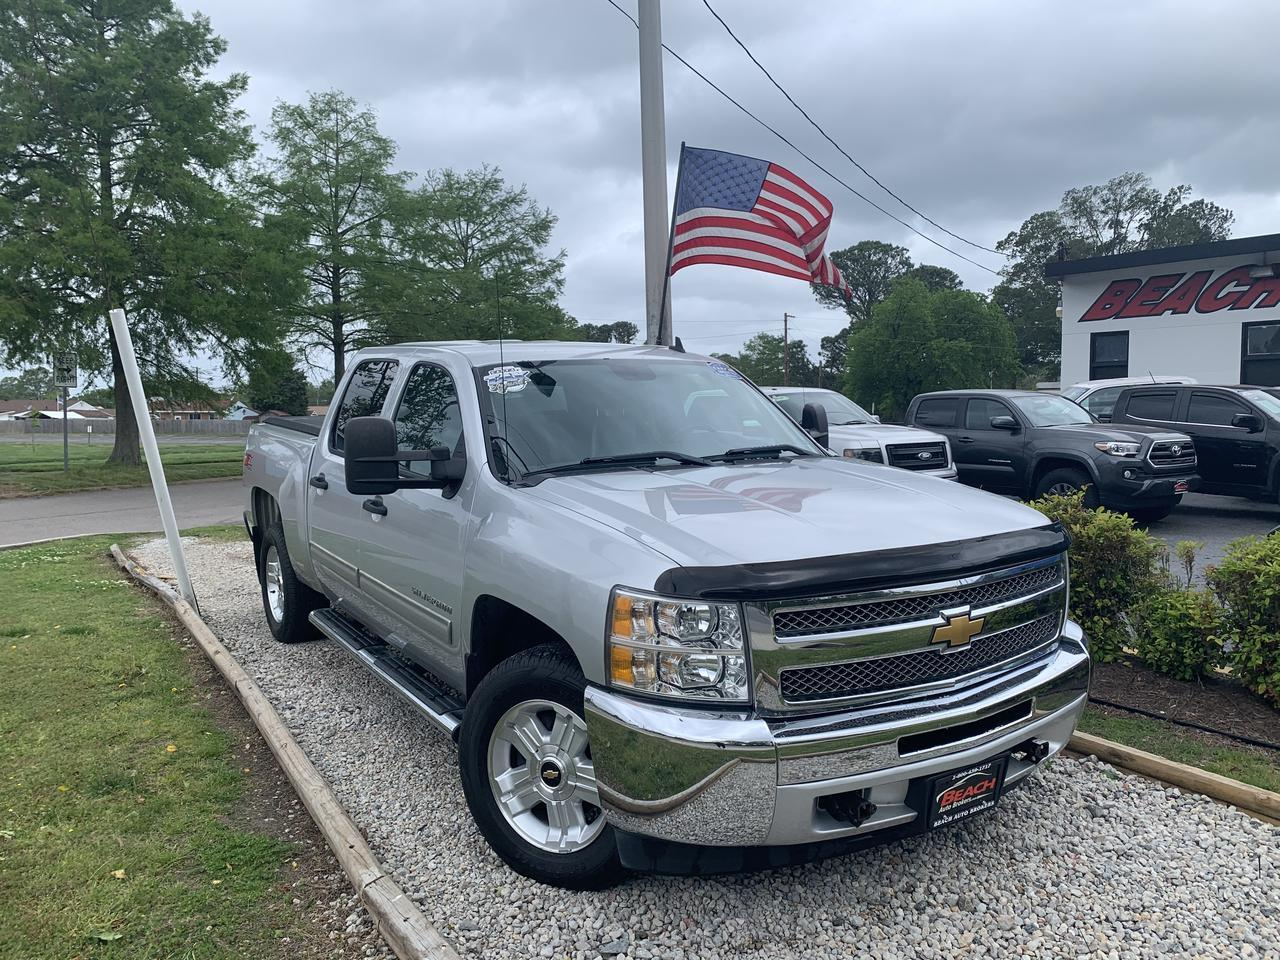 2013 CHEVROLET SILVERADO 1500 LT CREW CAB 4X4, WARRANTY, Z71 OFF ROAD PKG, LEATHER, BLUETOOTH, BACKUP CAM, TOW PKG! Norfolk VA